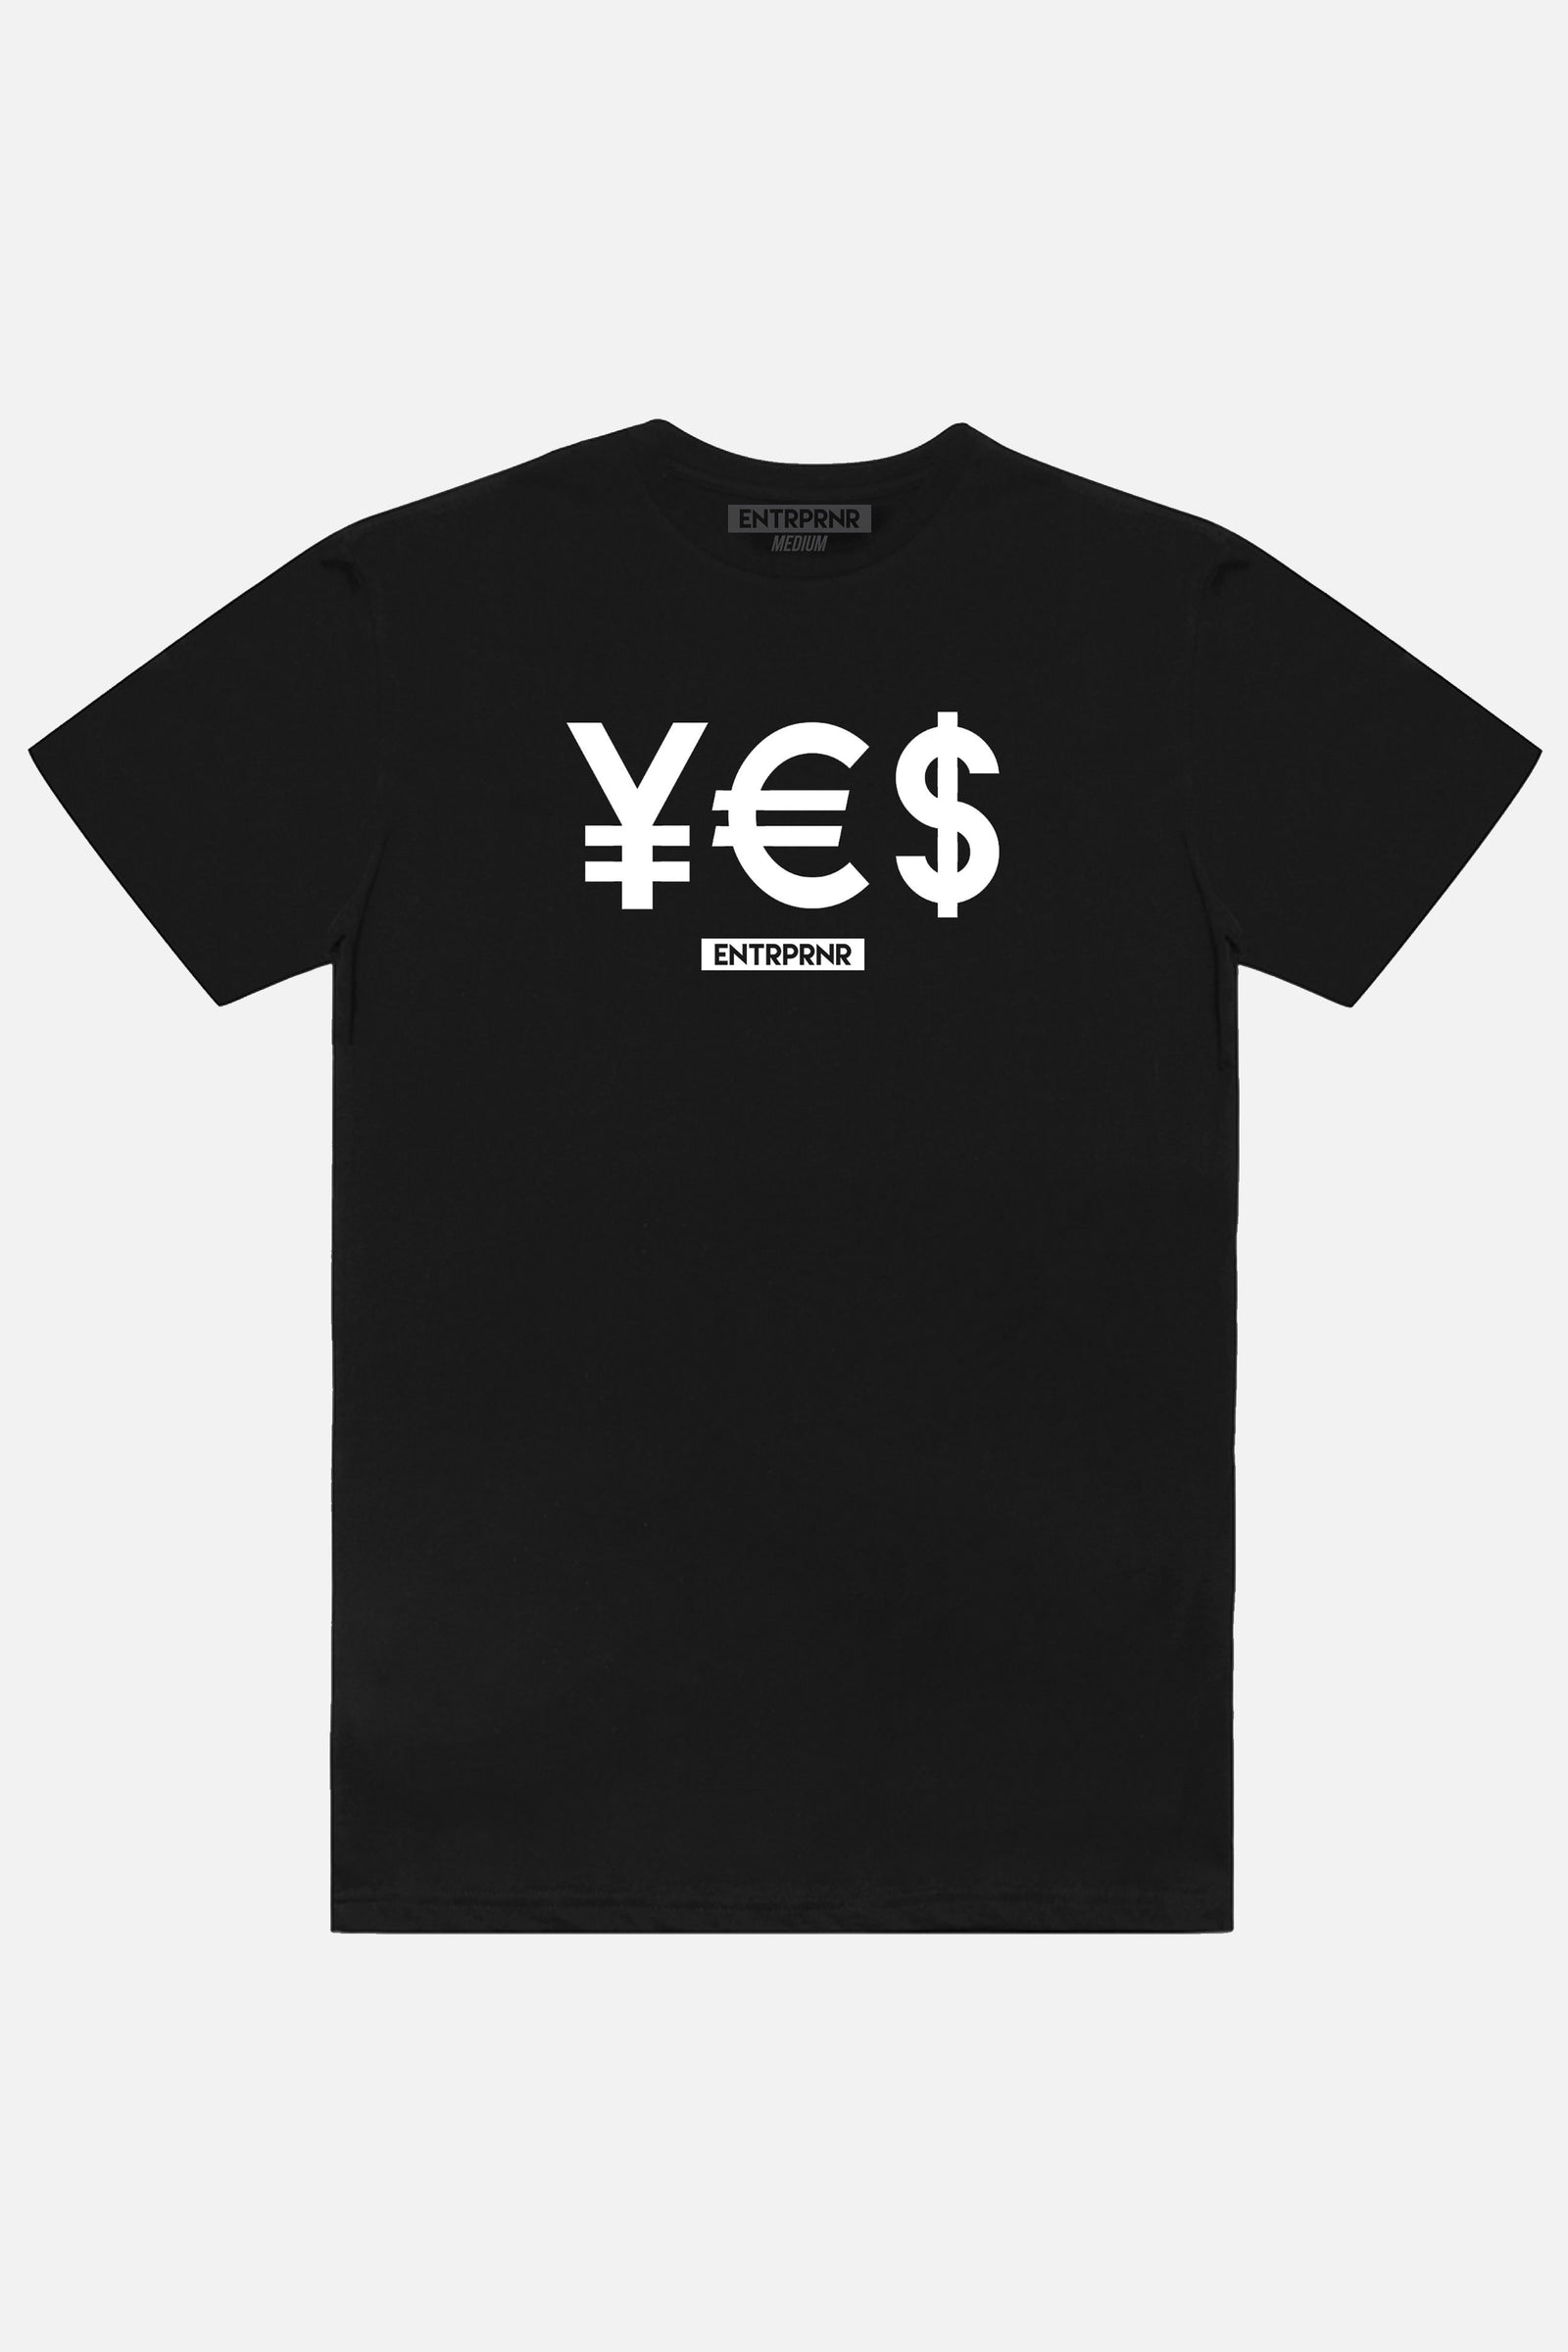 ENTRPRNR YES Tee - Black - ENTRPRNR® | The Entrepreneur's Clothing Brand. | Stagnancy is the Enemy. Action is King.